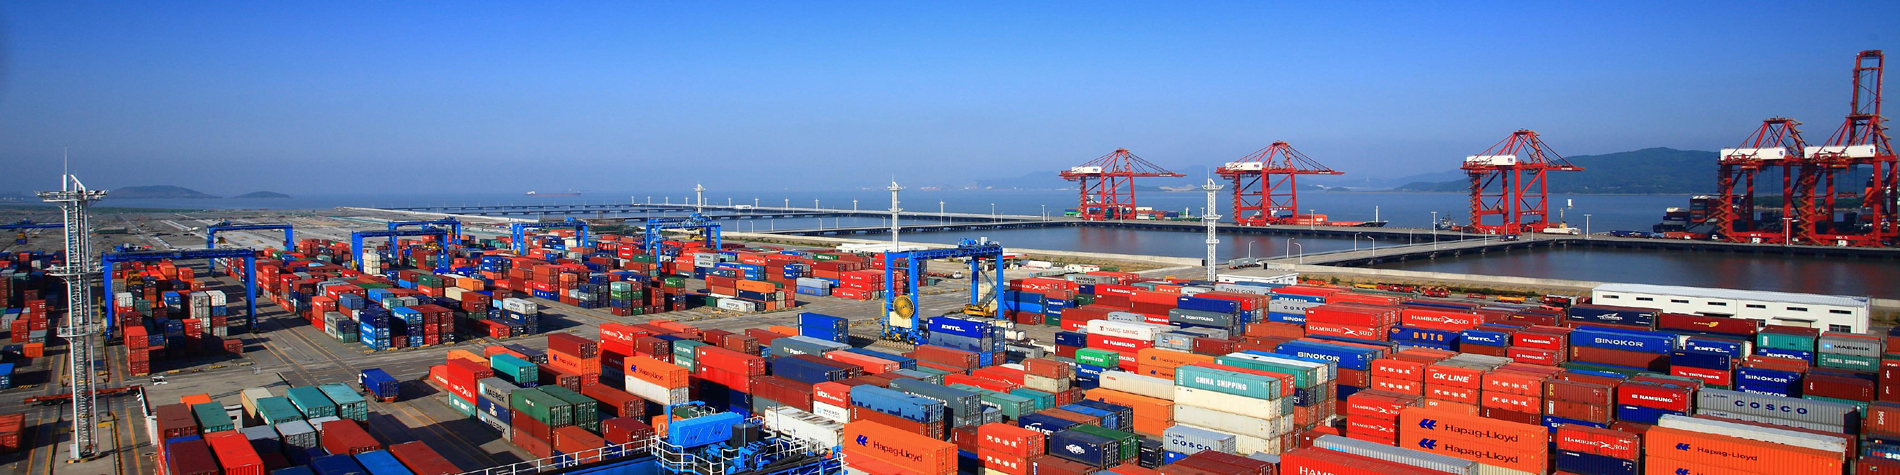 Ningbo Port - World's Fourth-Largest Port